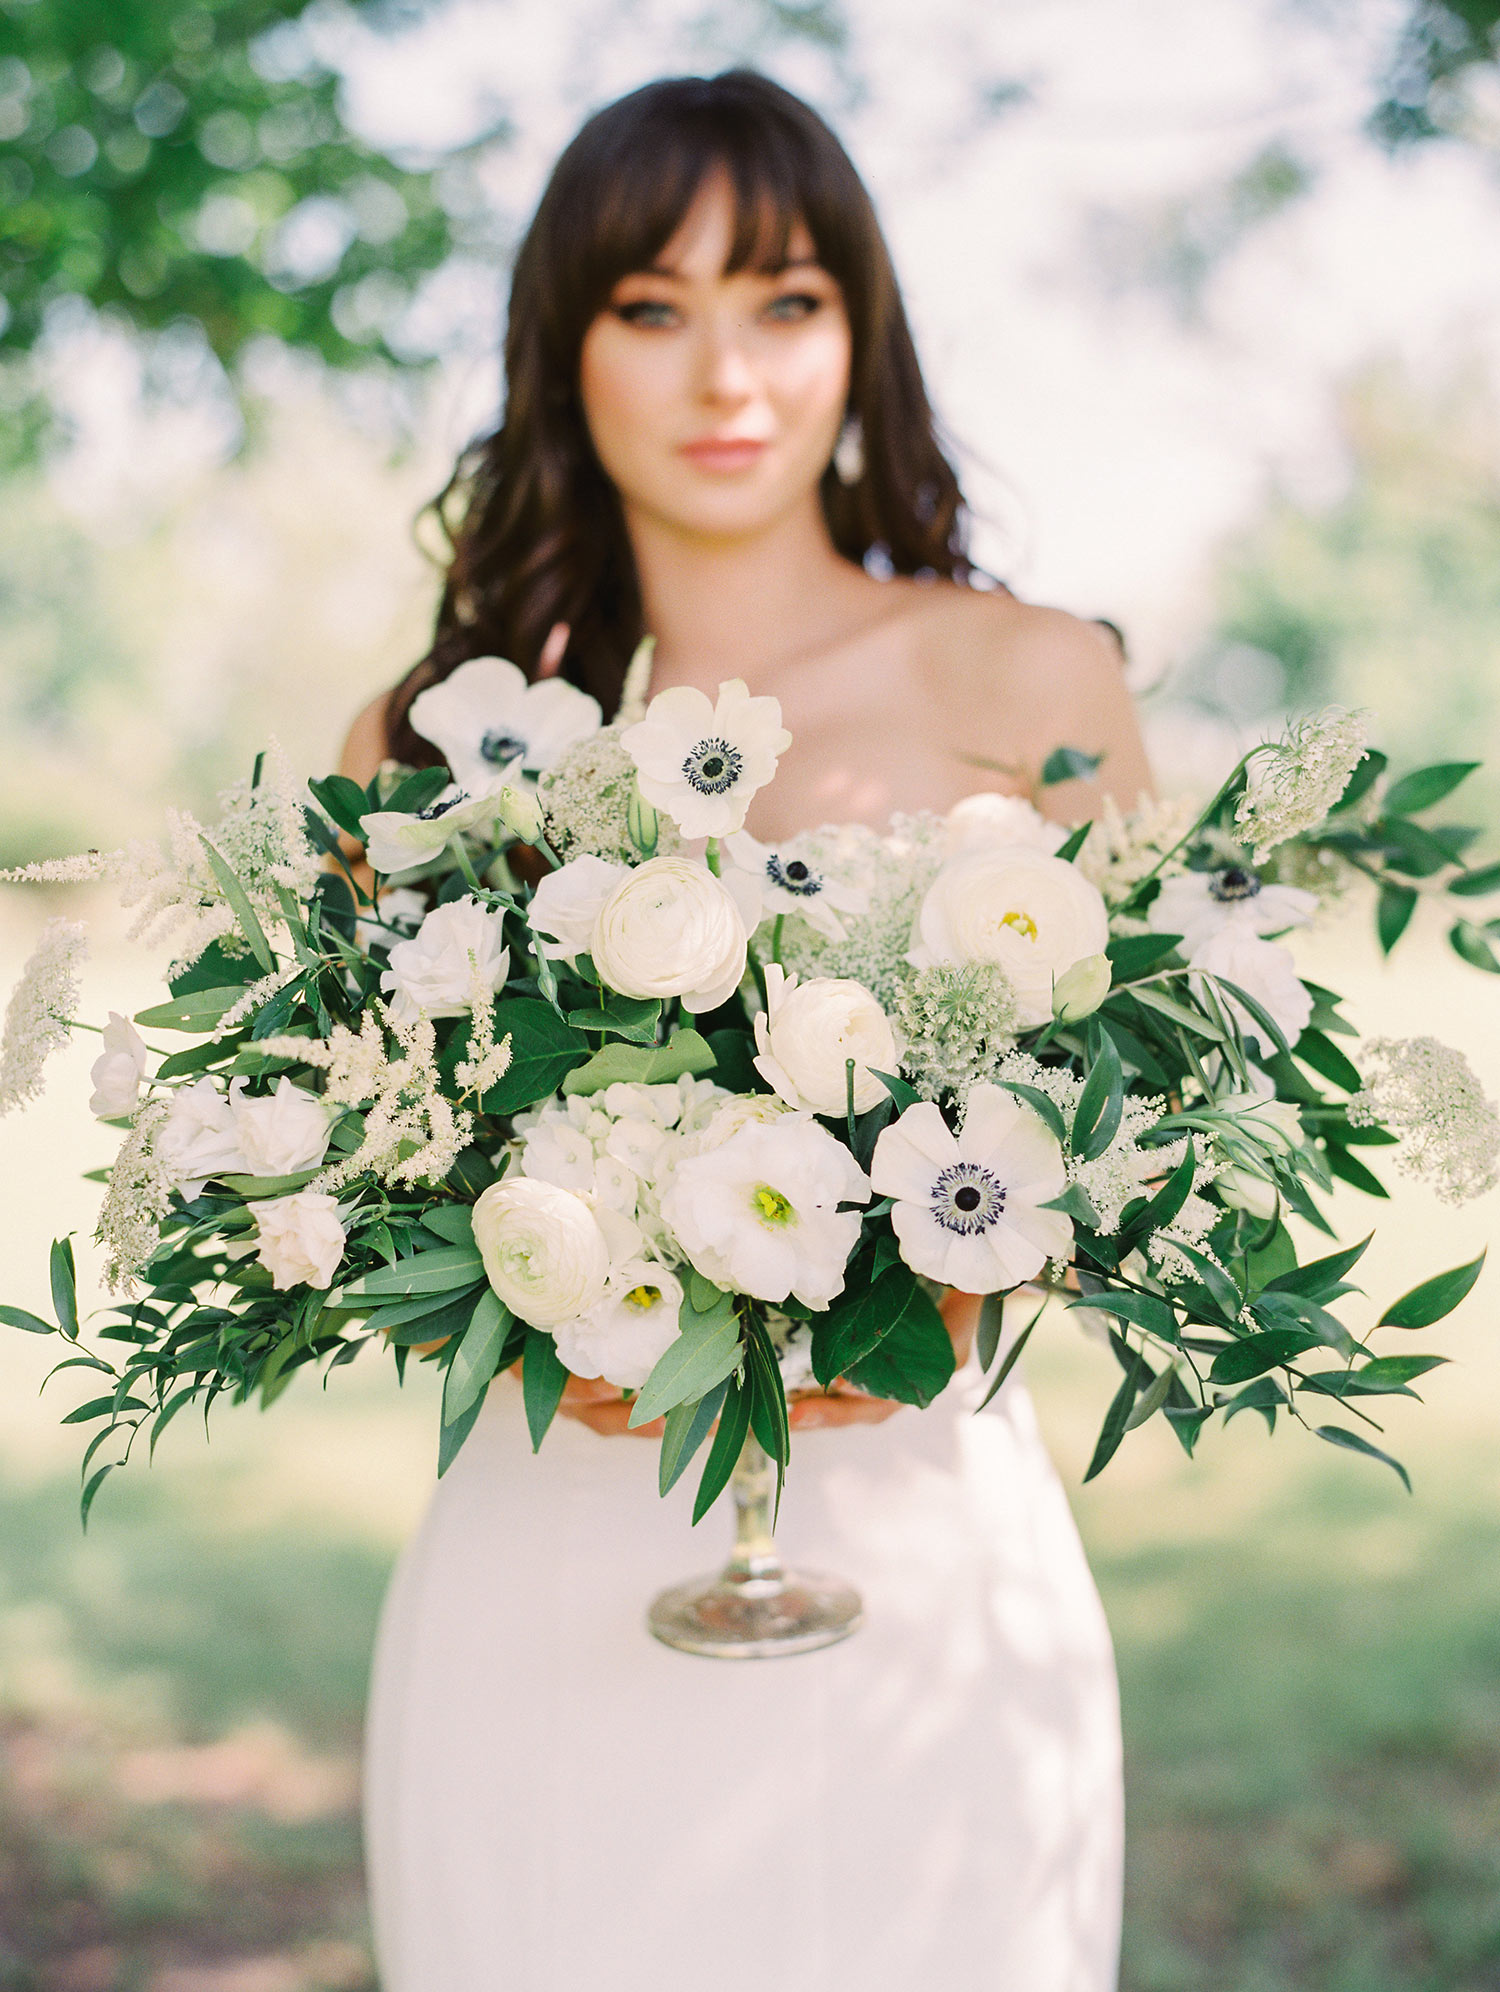 Bride holding white and green flowers in a silver vase